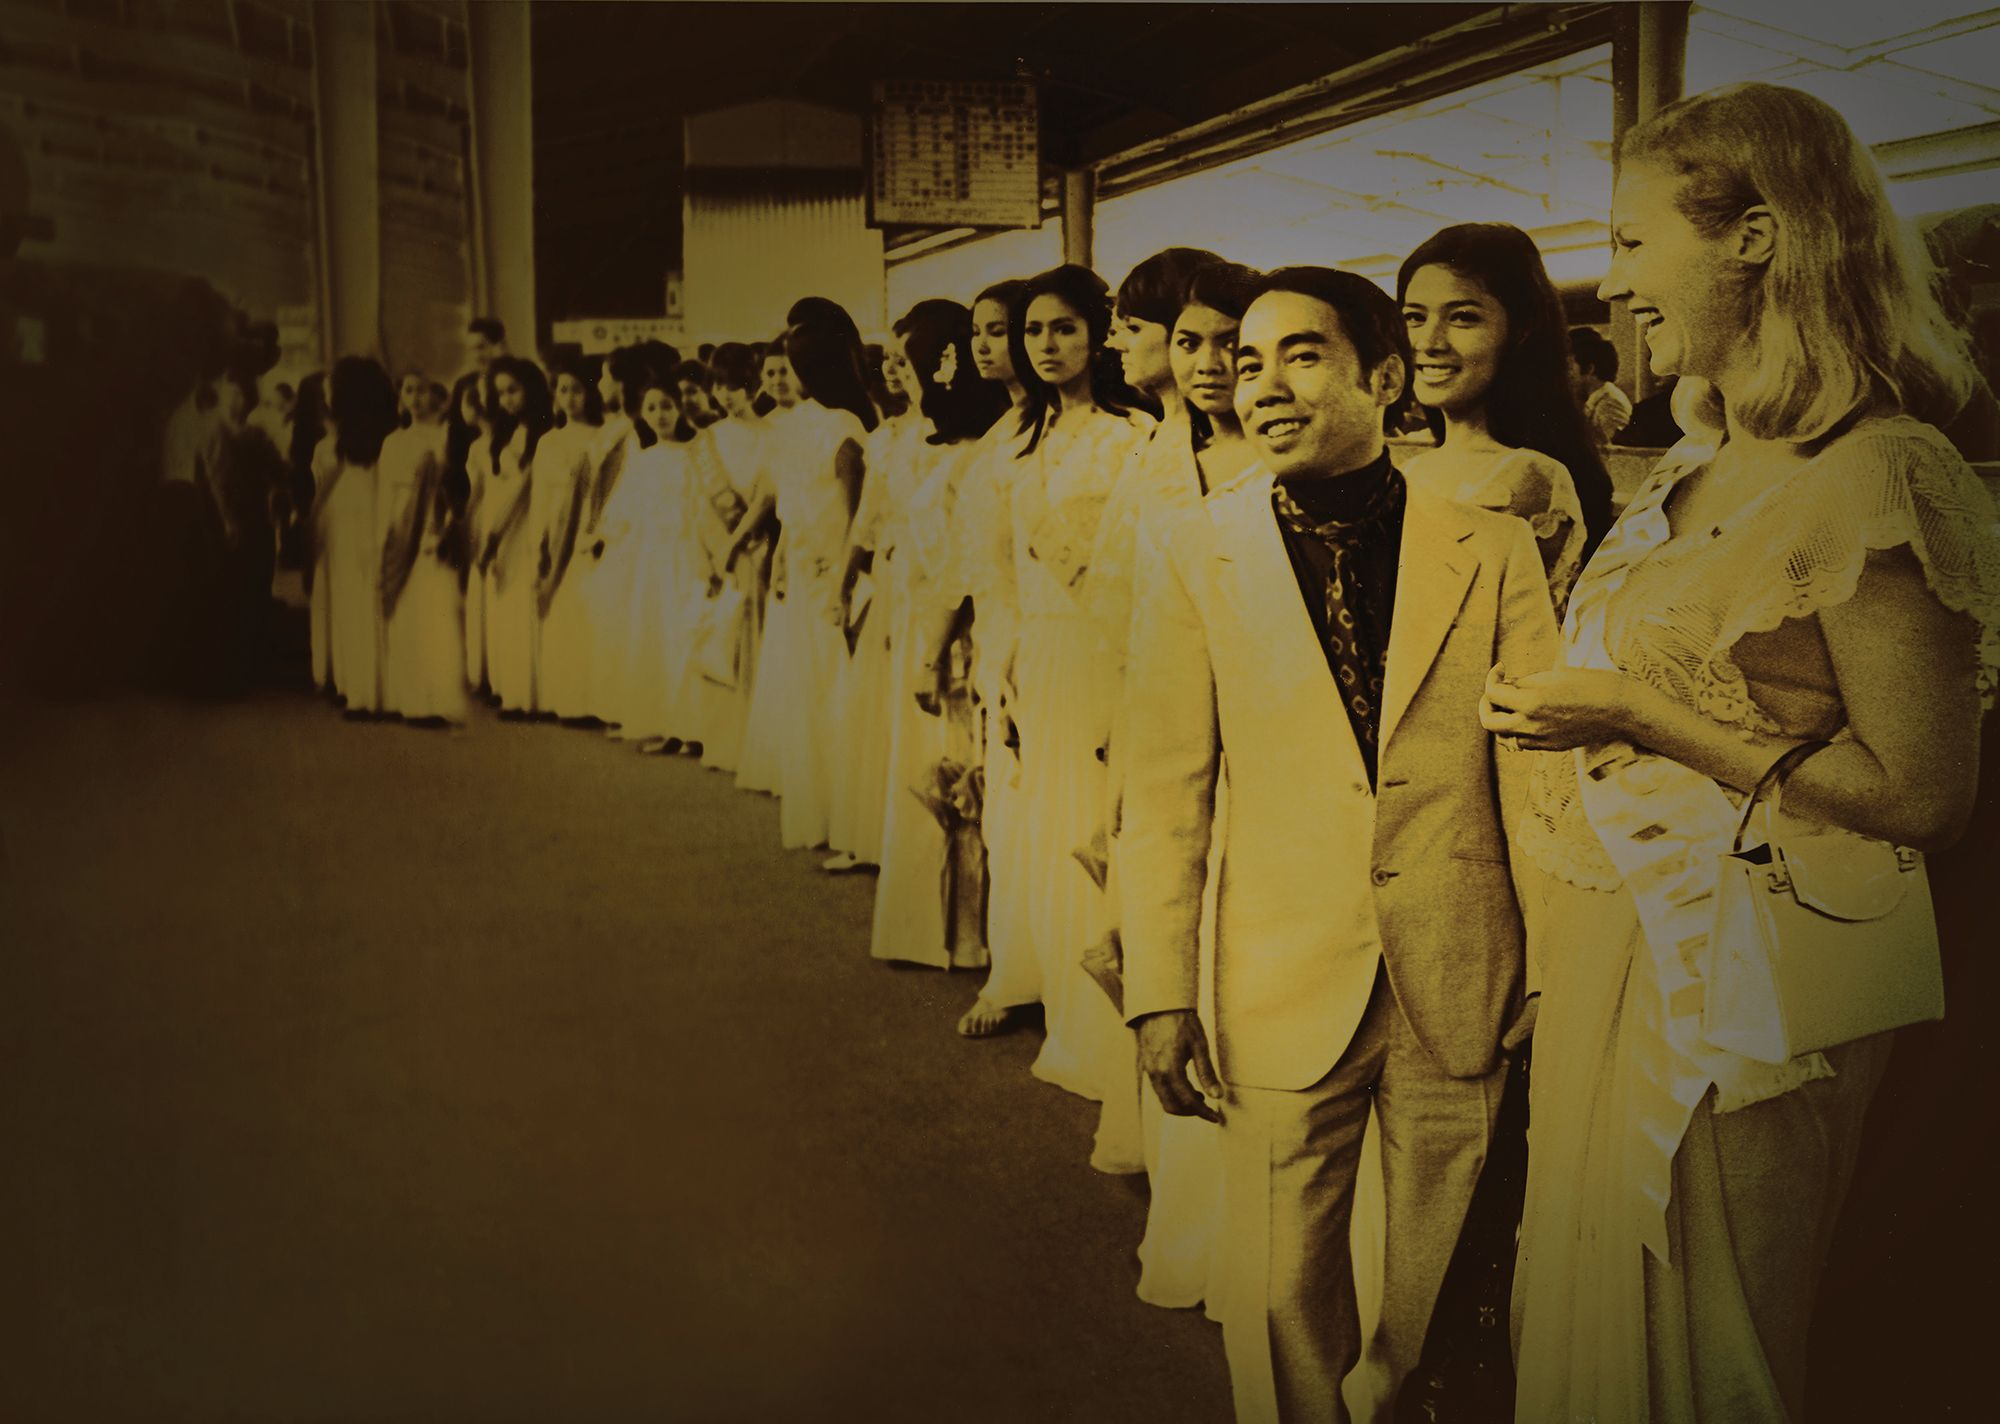 Pitoy Moreno: The Fashion Czar Of Asia